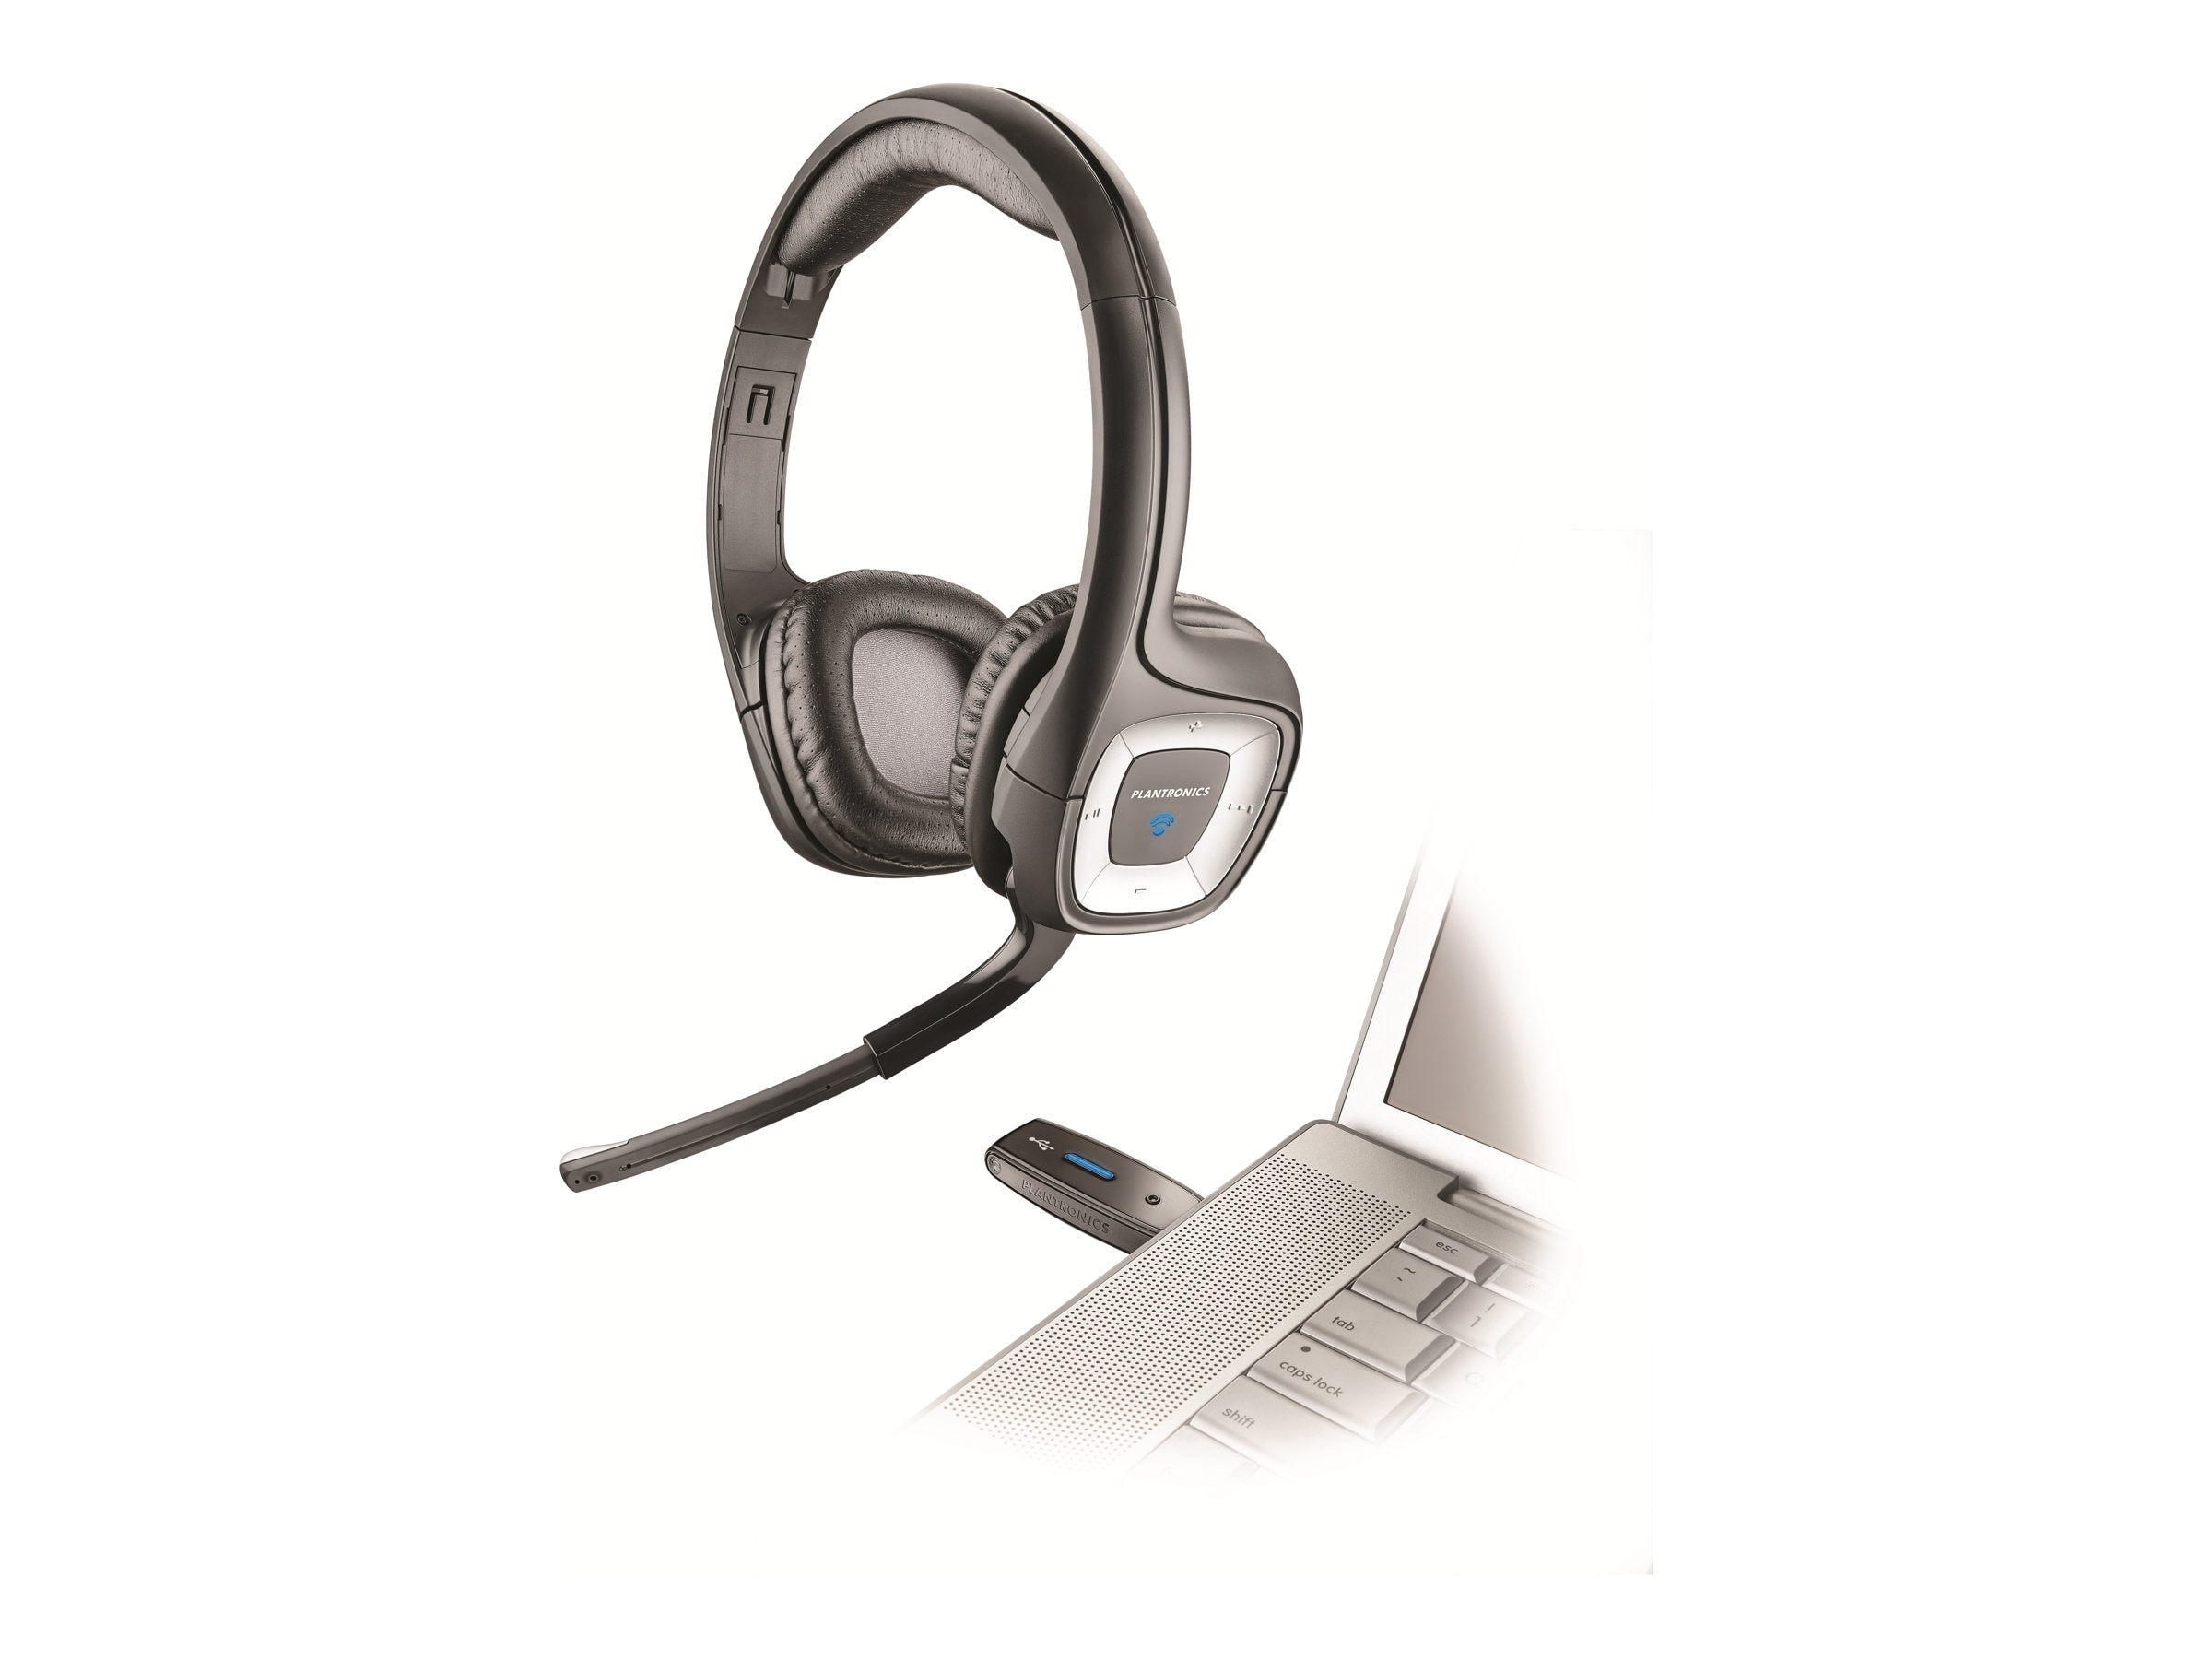 Plantronics .Audio 995 Wireless Headset, 80930-21